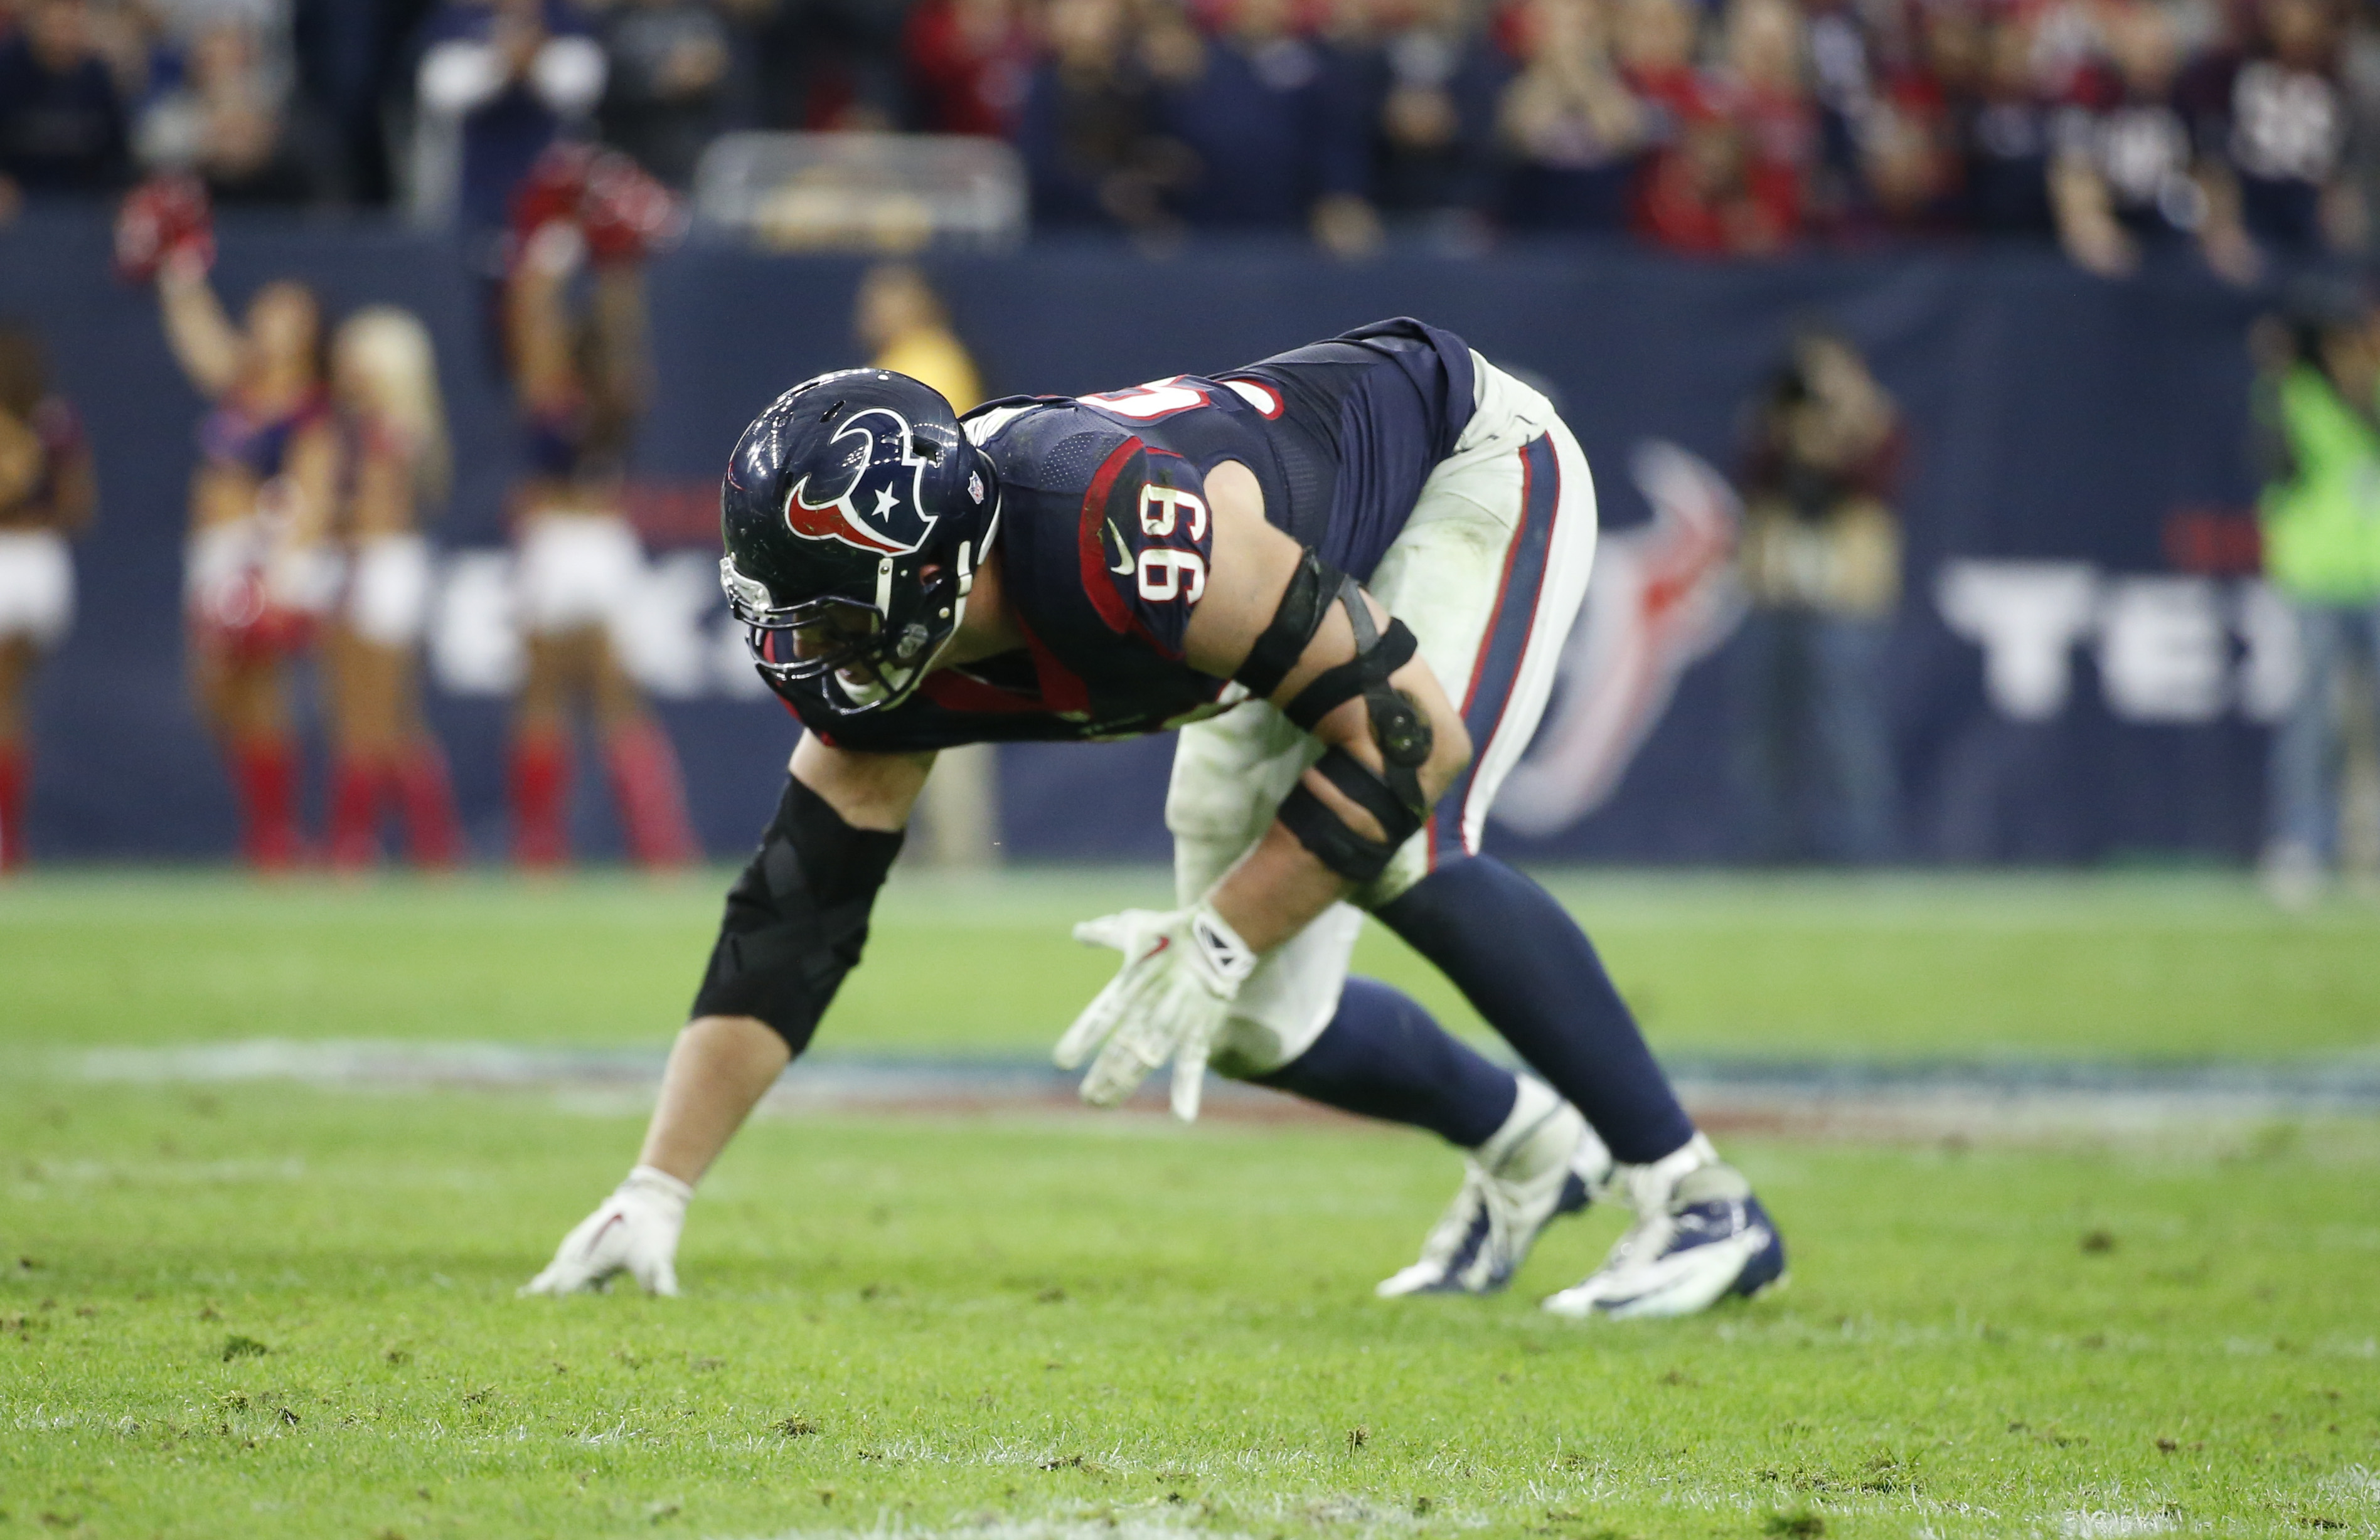 From play to play, J.J. Watt decides where to line up.